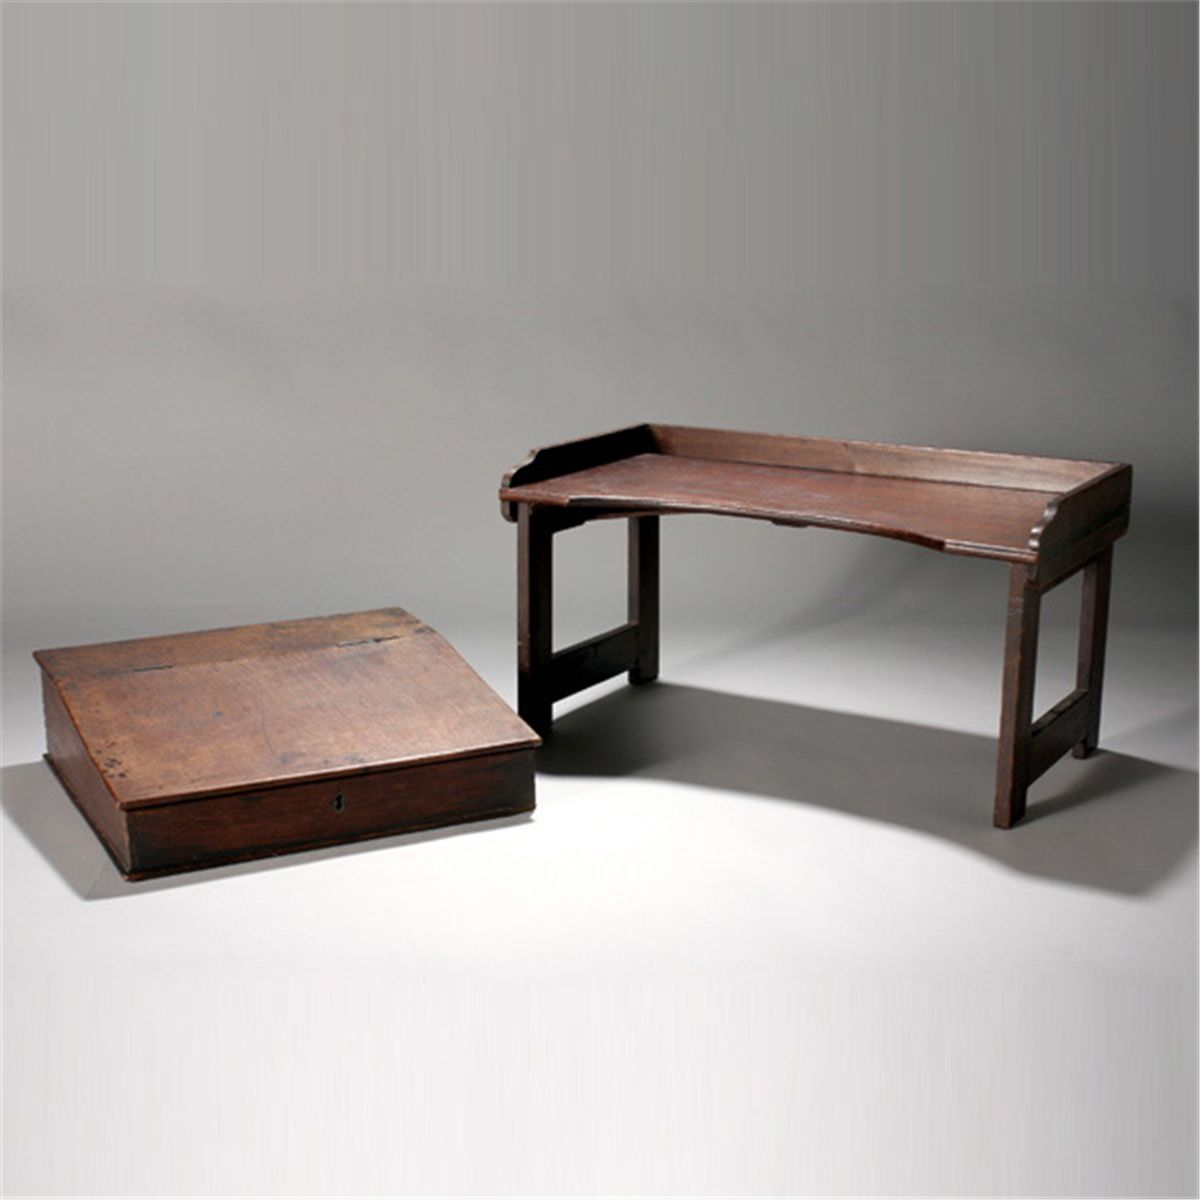 Picture of: Victorian Lap Desk Together With A Folding Tray